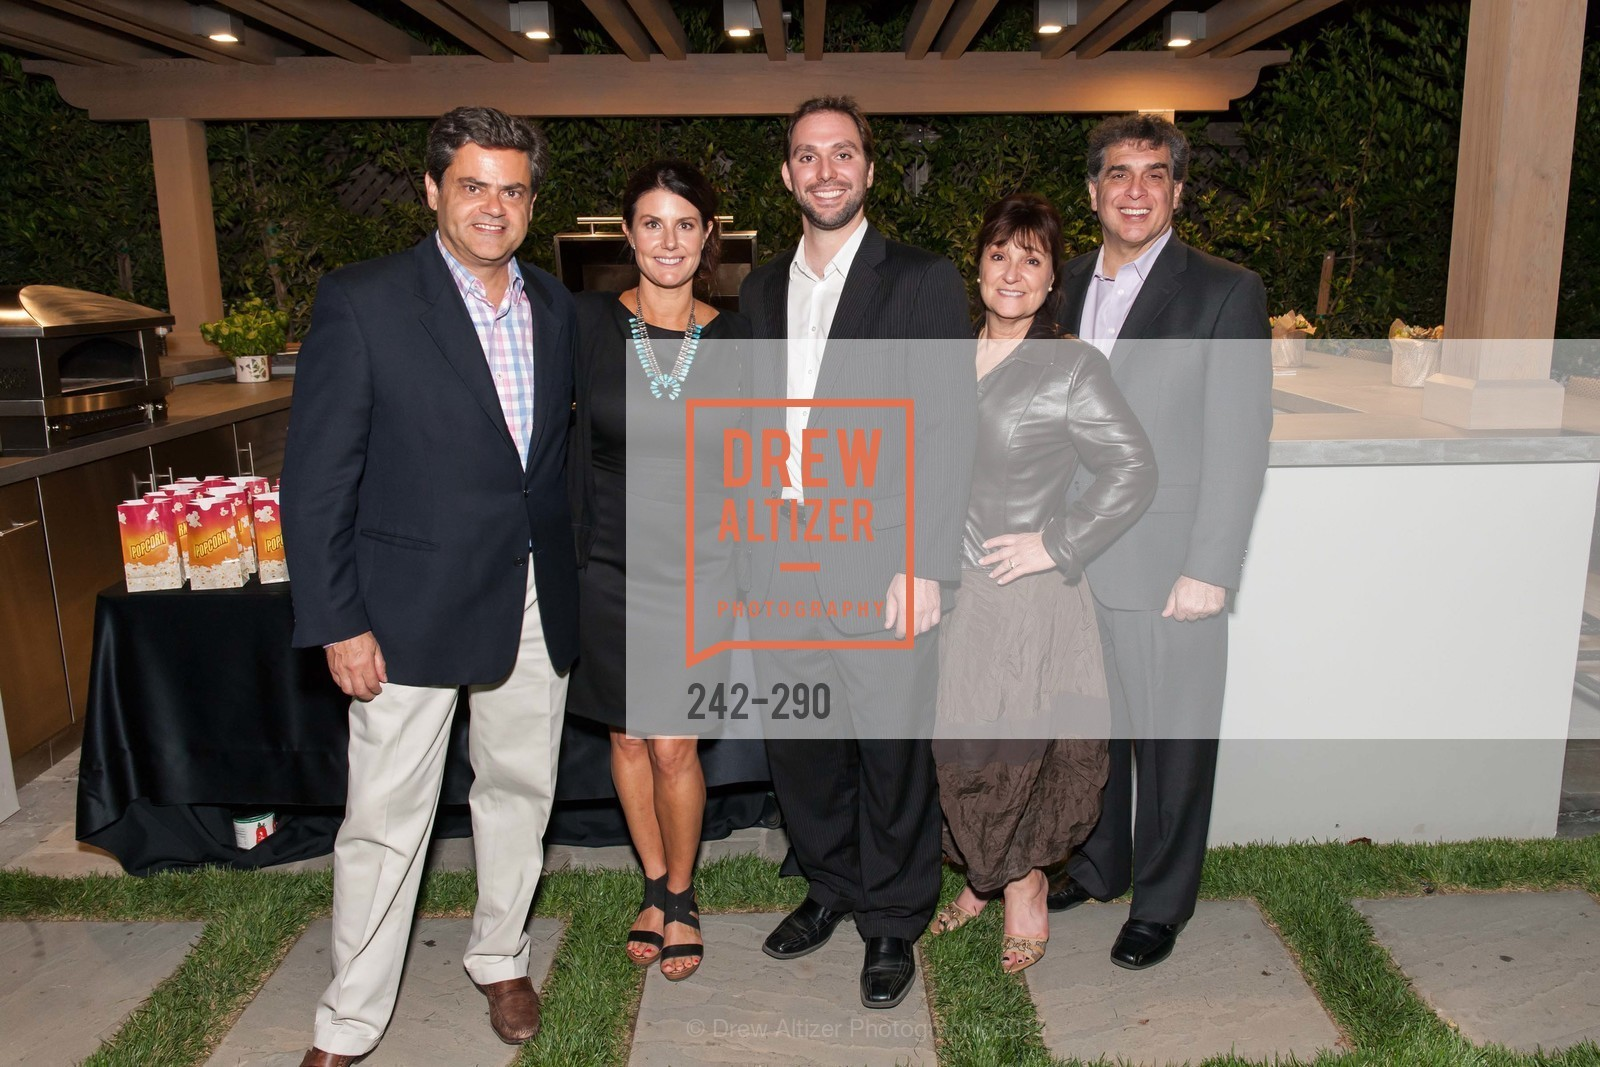 Pete Georgiadis, Carissa Ashman, Chris Papageorge, Napa Valley Film Festival: Silicon Valley First Look, Private home. 1030 Hamilton Ave, September 16th, 2015,Drew Altizer, Drew Altizer Photography, full-service event agency, private events, San Francisco photographer, photographer California